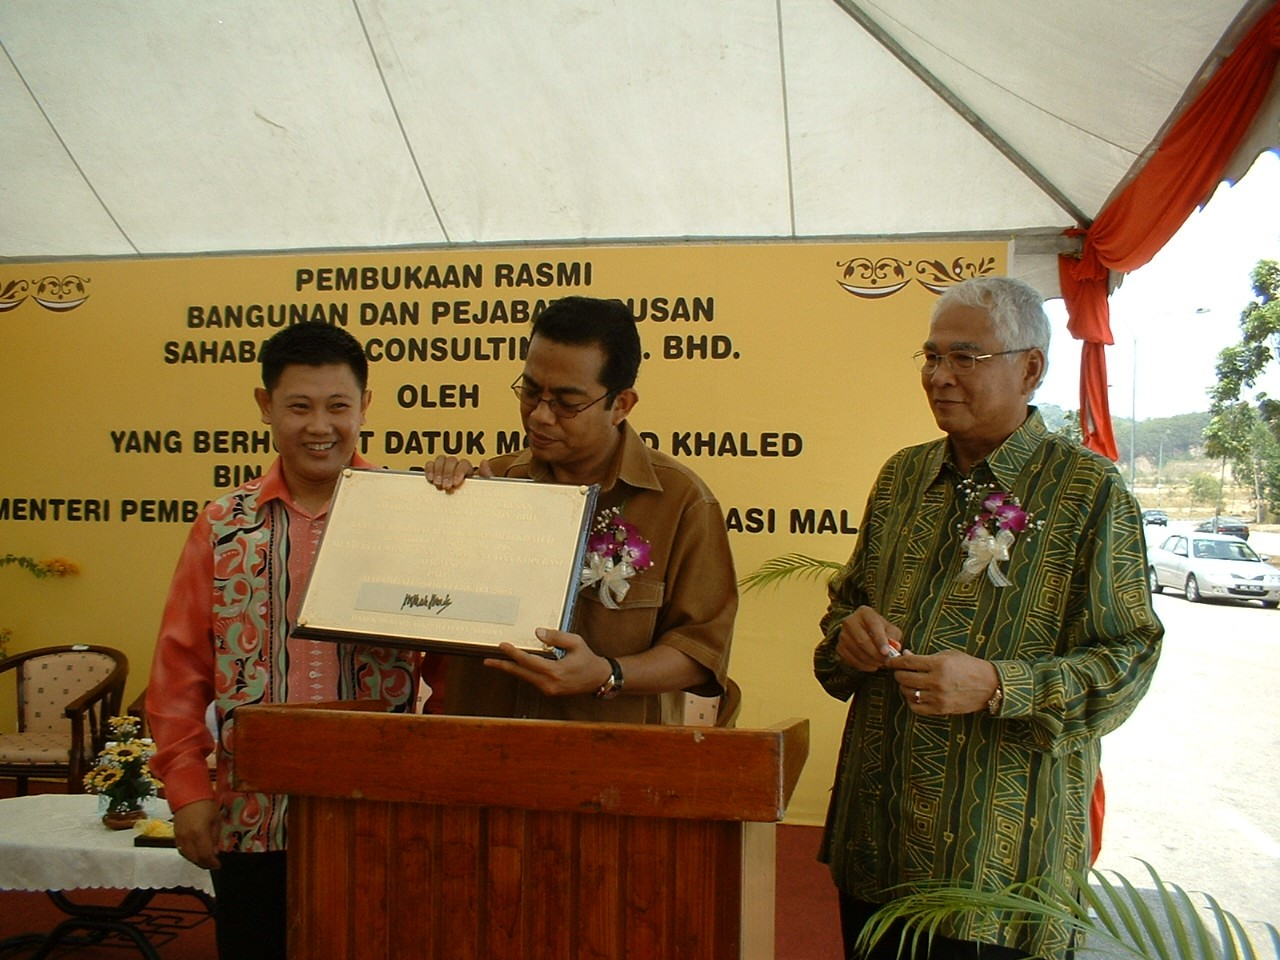 SAHABAT SMI Grand Opening Ceremony  20.02.2005